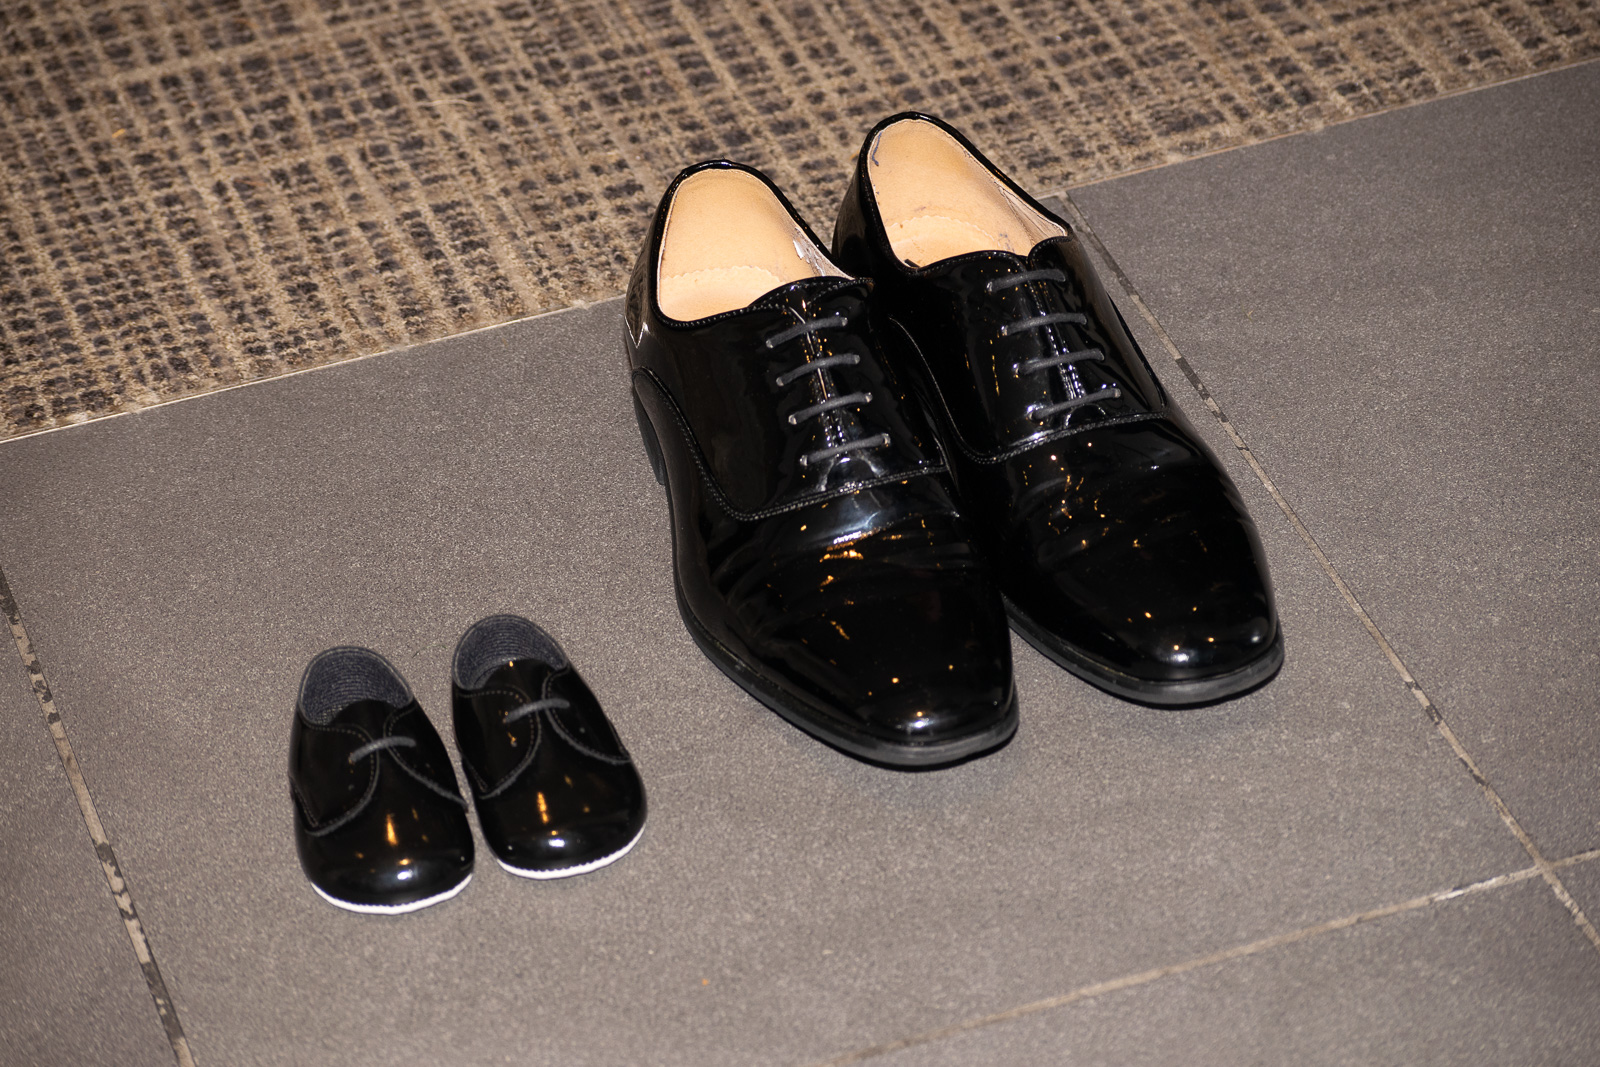 Little shoes to fill - No suit is complete without a smart pair of shiny shoes, even if you are only 8 months old!